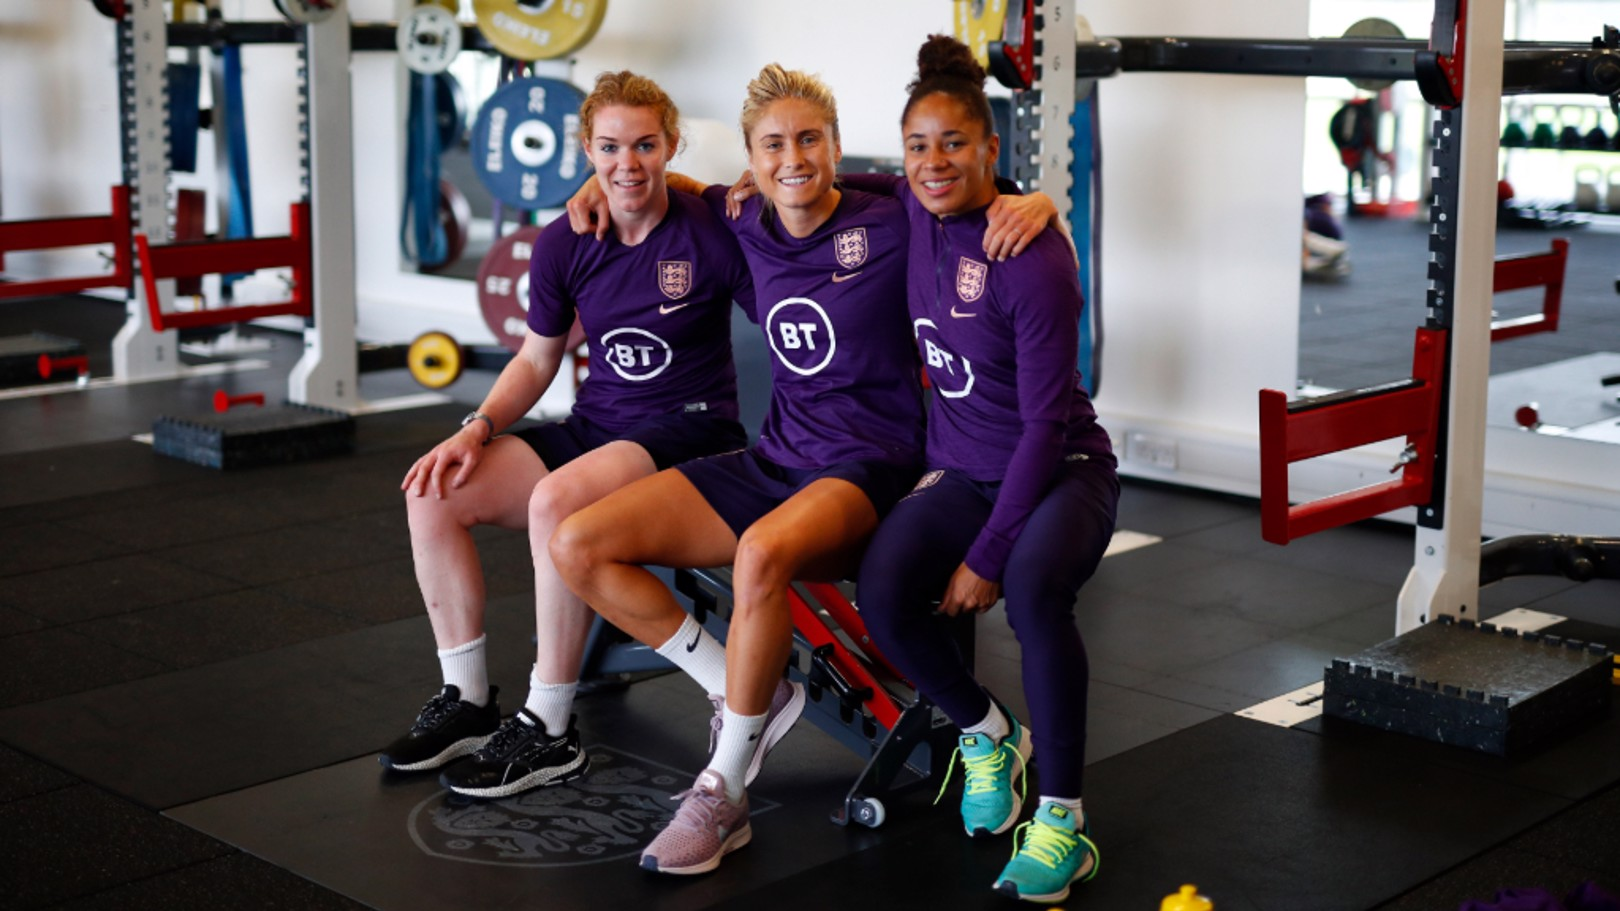 LIONESSES' PRIDE: Aoife Mannion, Steph Houghton and Demi Stokes